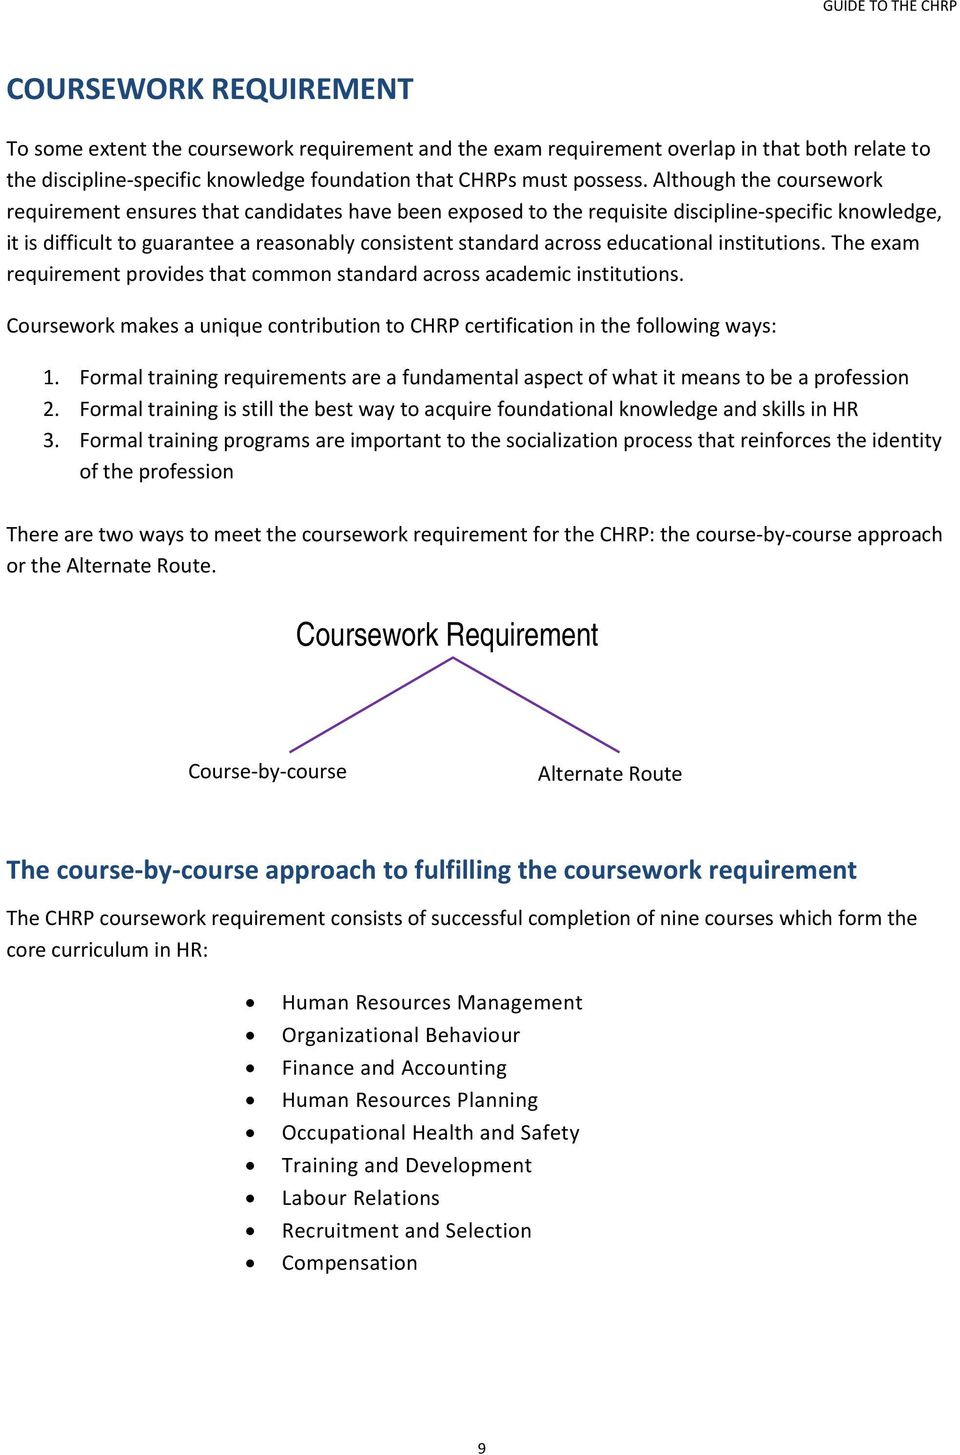 chrp coursework requirements